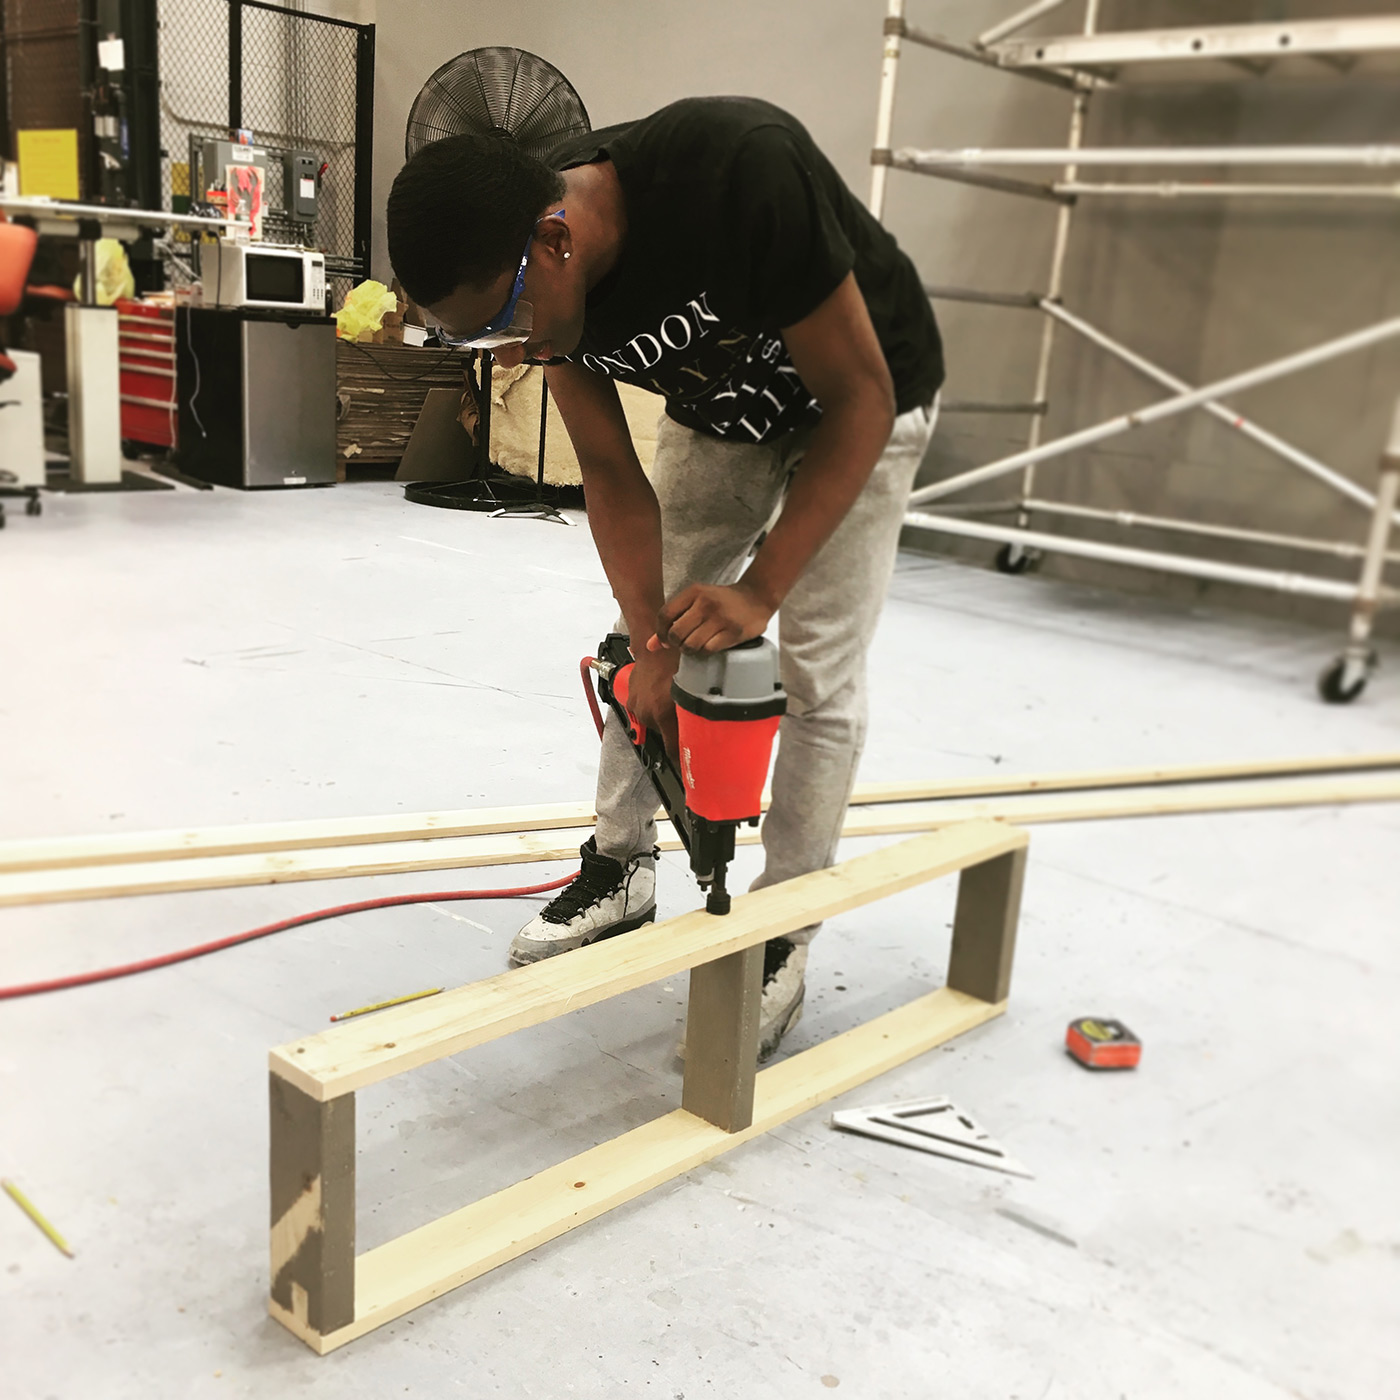 An intern uses a power tool to build a set piece